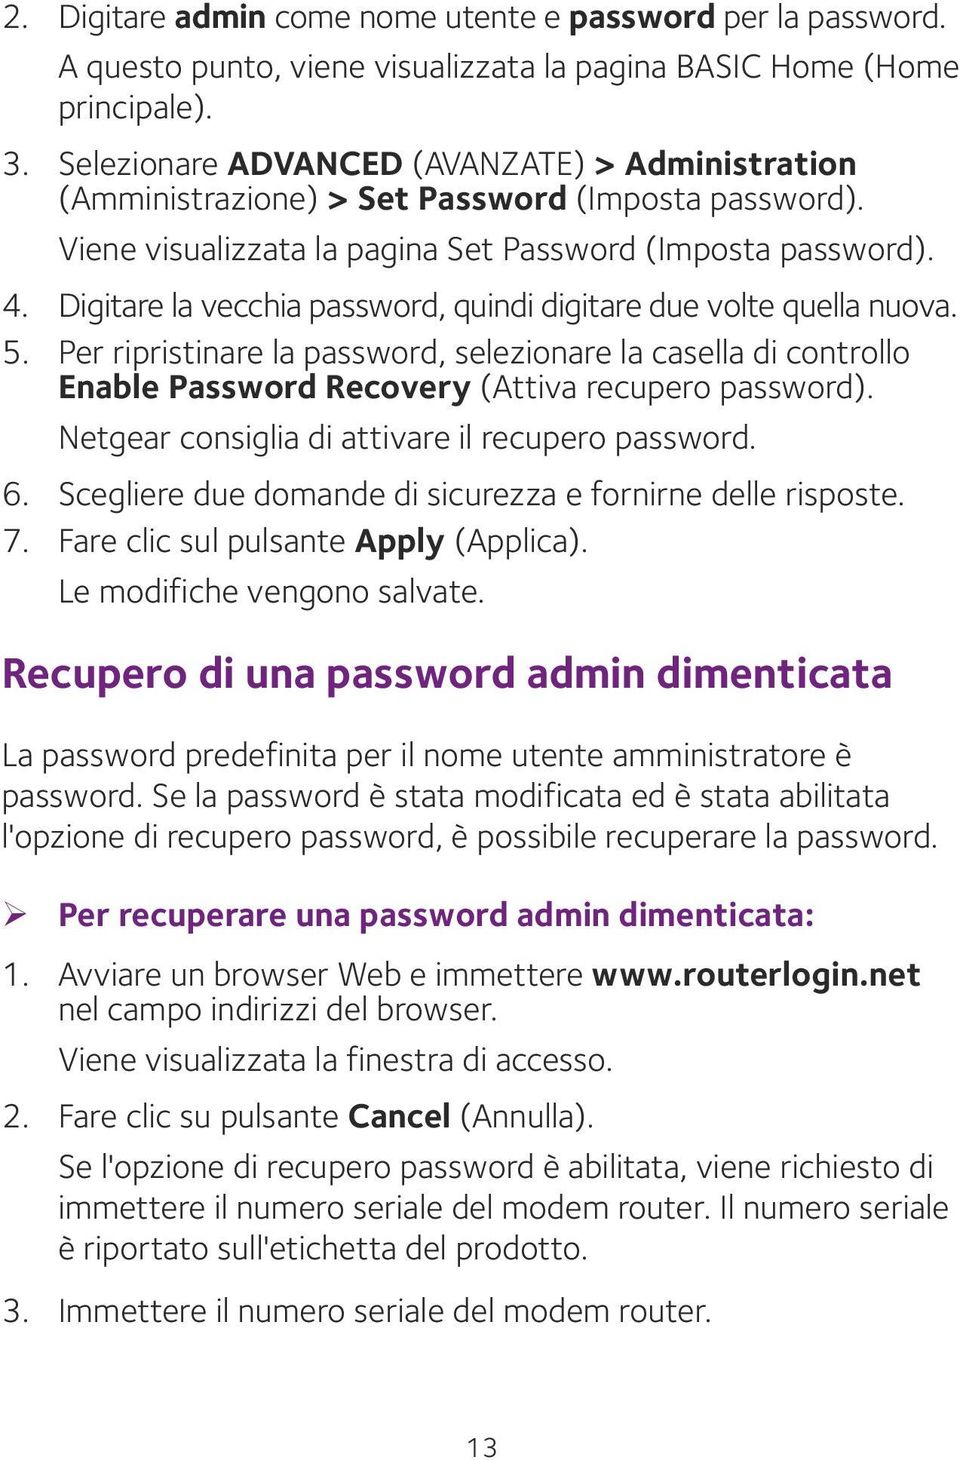 Digitare la vecchia password, quindi digitare due volte quella nuova. 5. Per ripristinare la password, selezionare la casella di controllo Enable Password Recovery (Attiva recupero password).